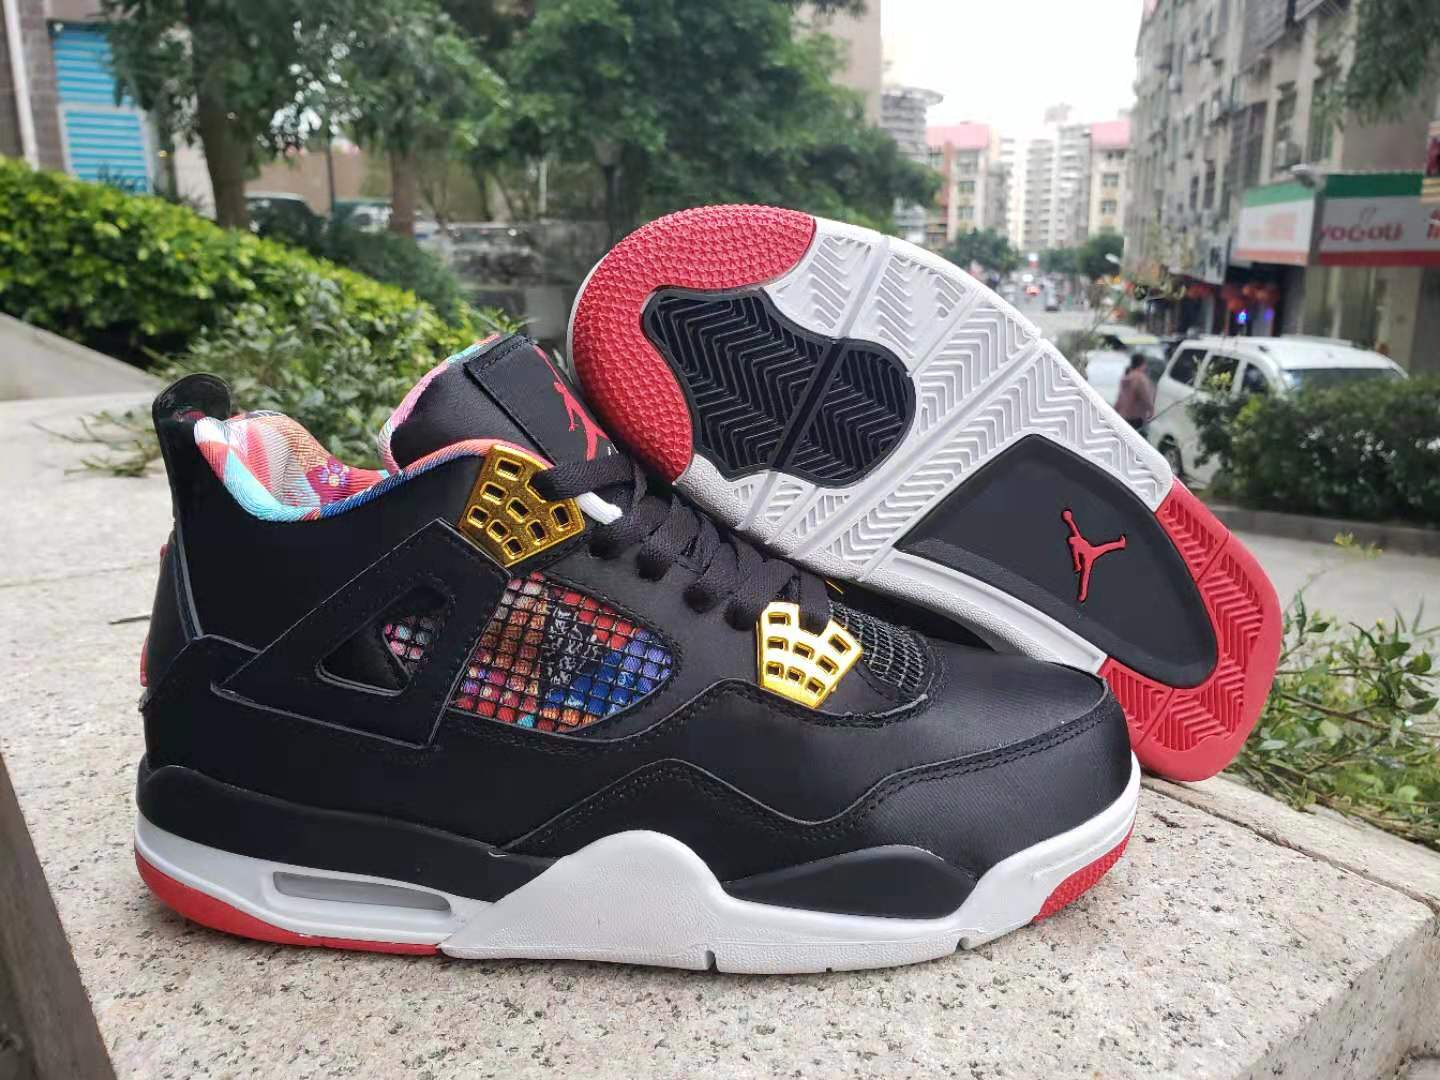 Jordan Shoes 4 Chinese Pig Year For Cheap